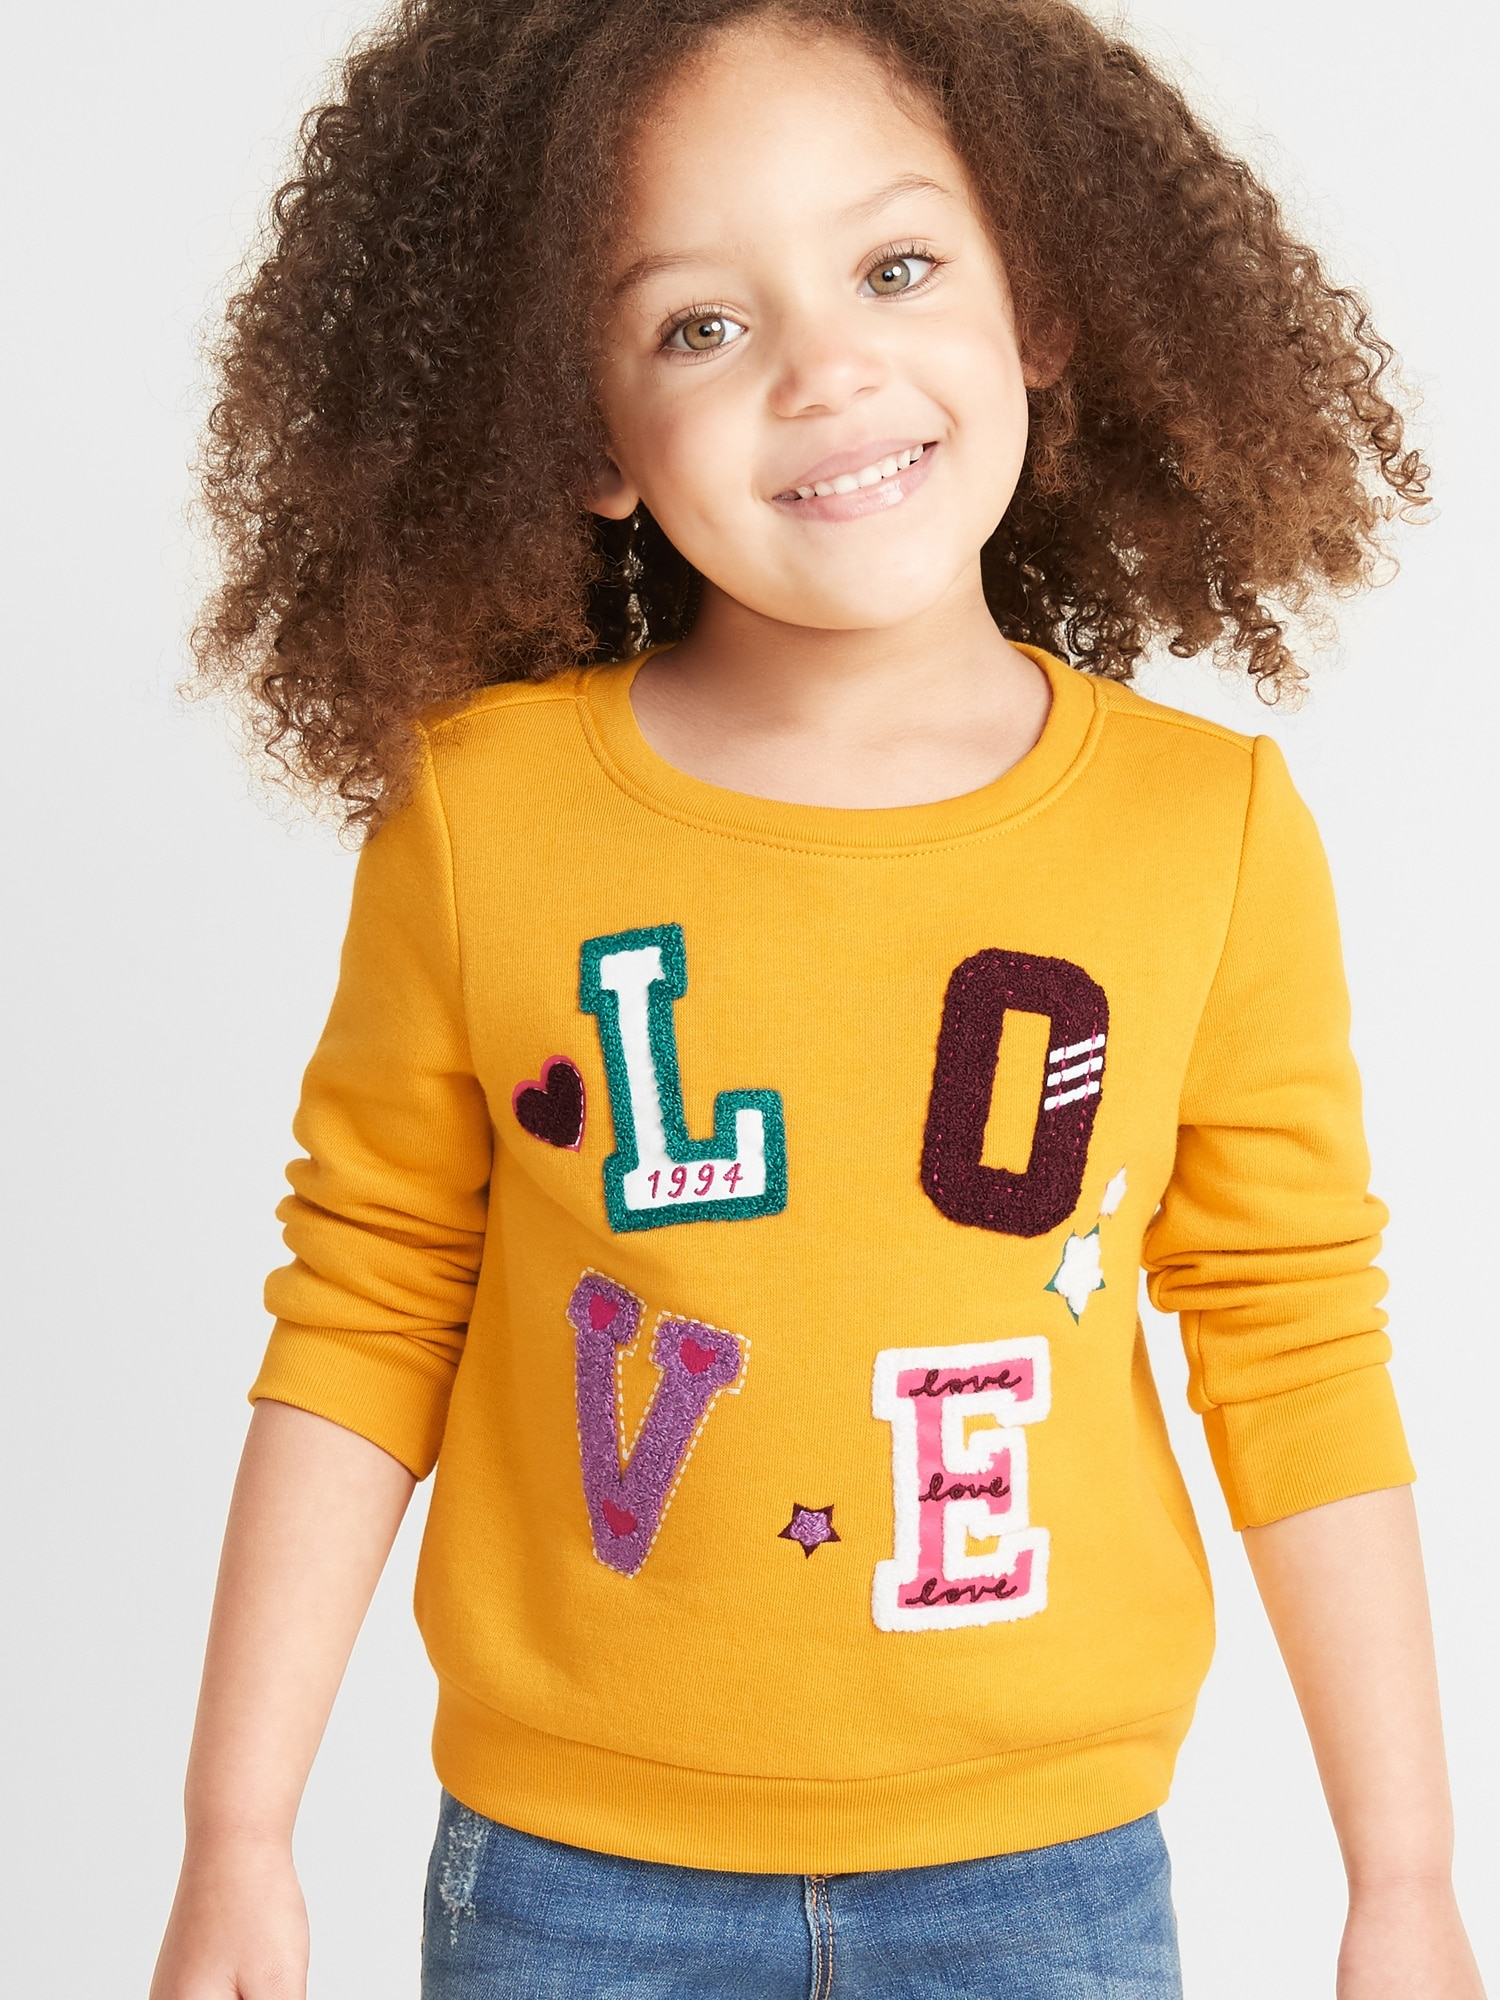 Relaxed Crew Neck Sweatshirt For Toddler Girls by Old Navy